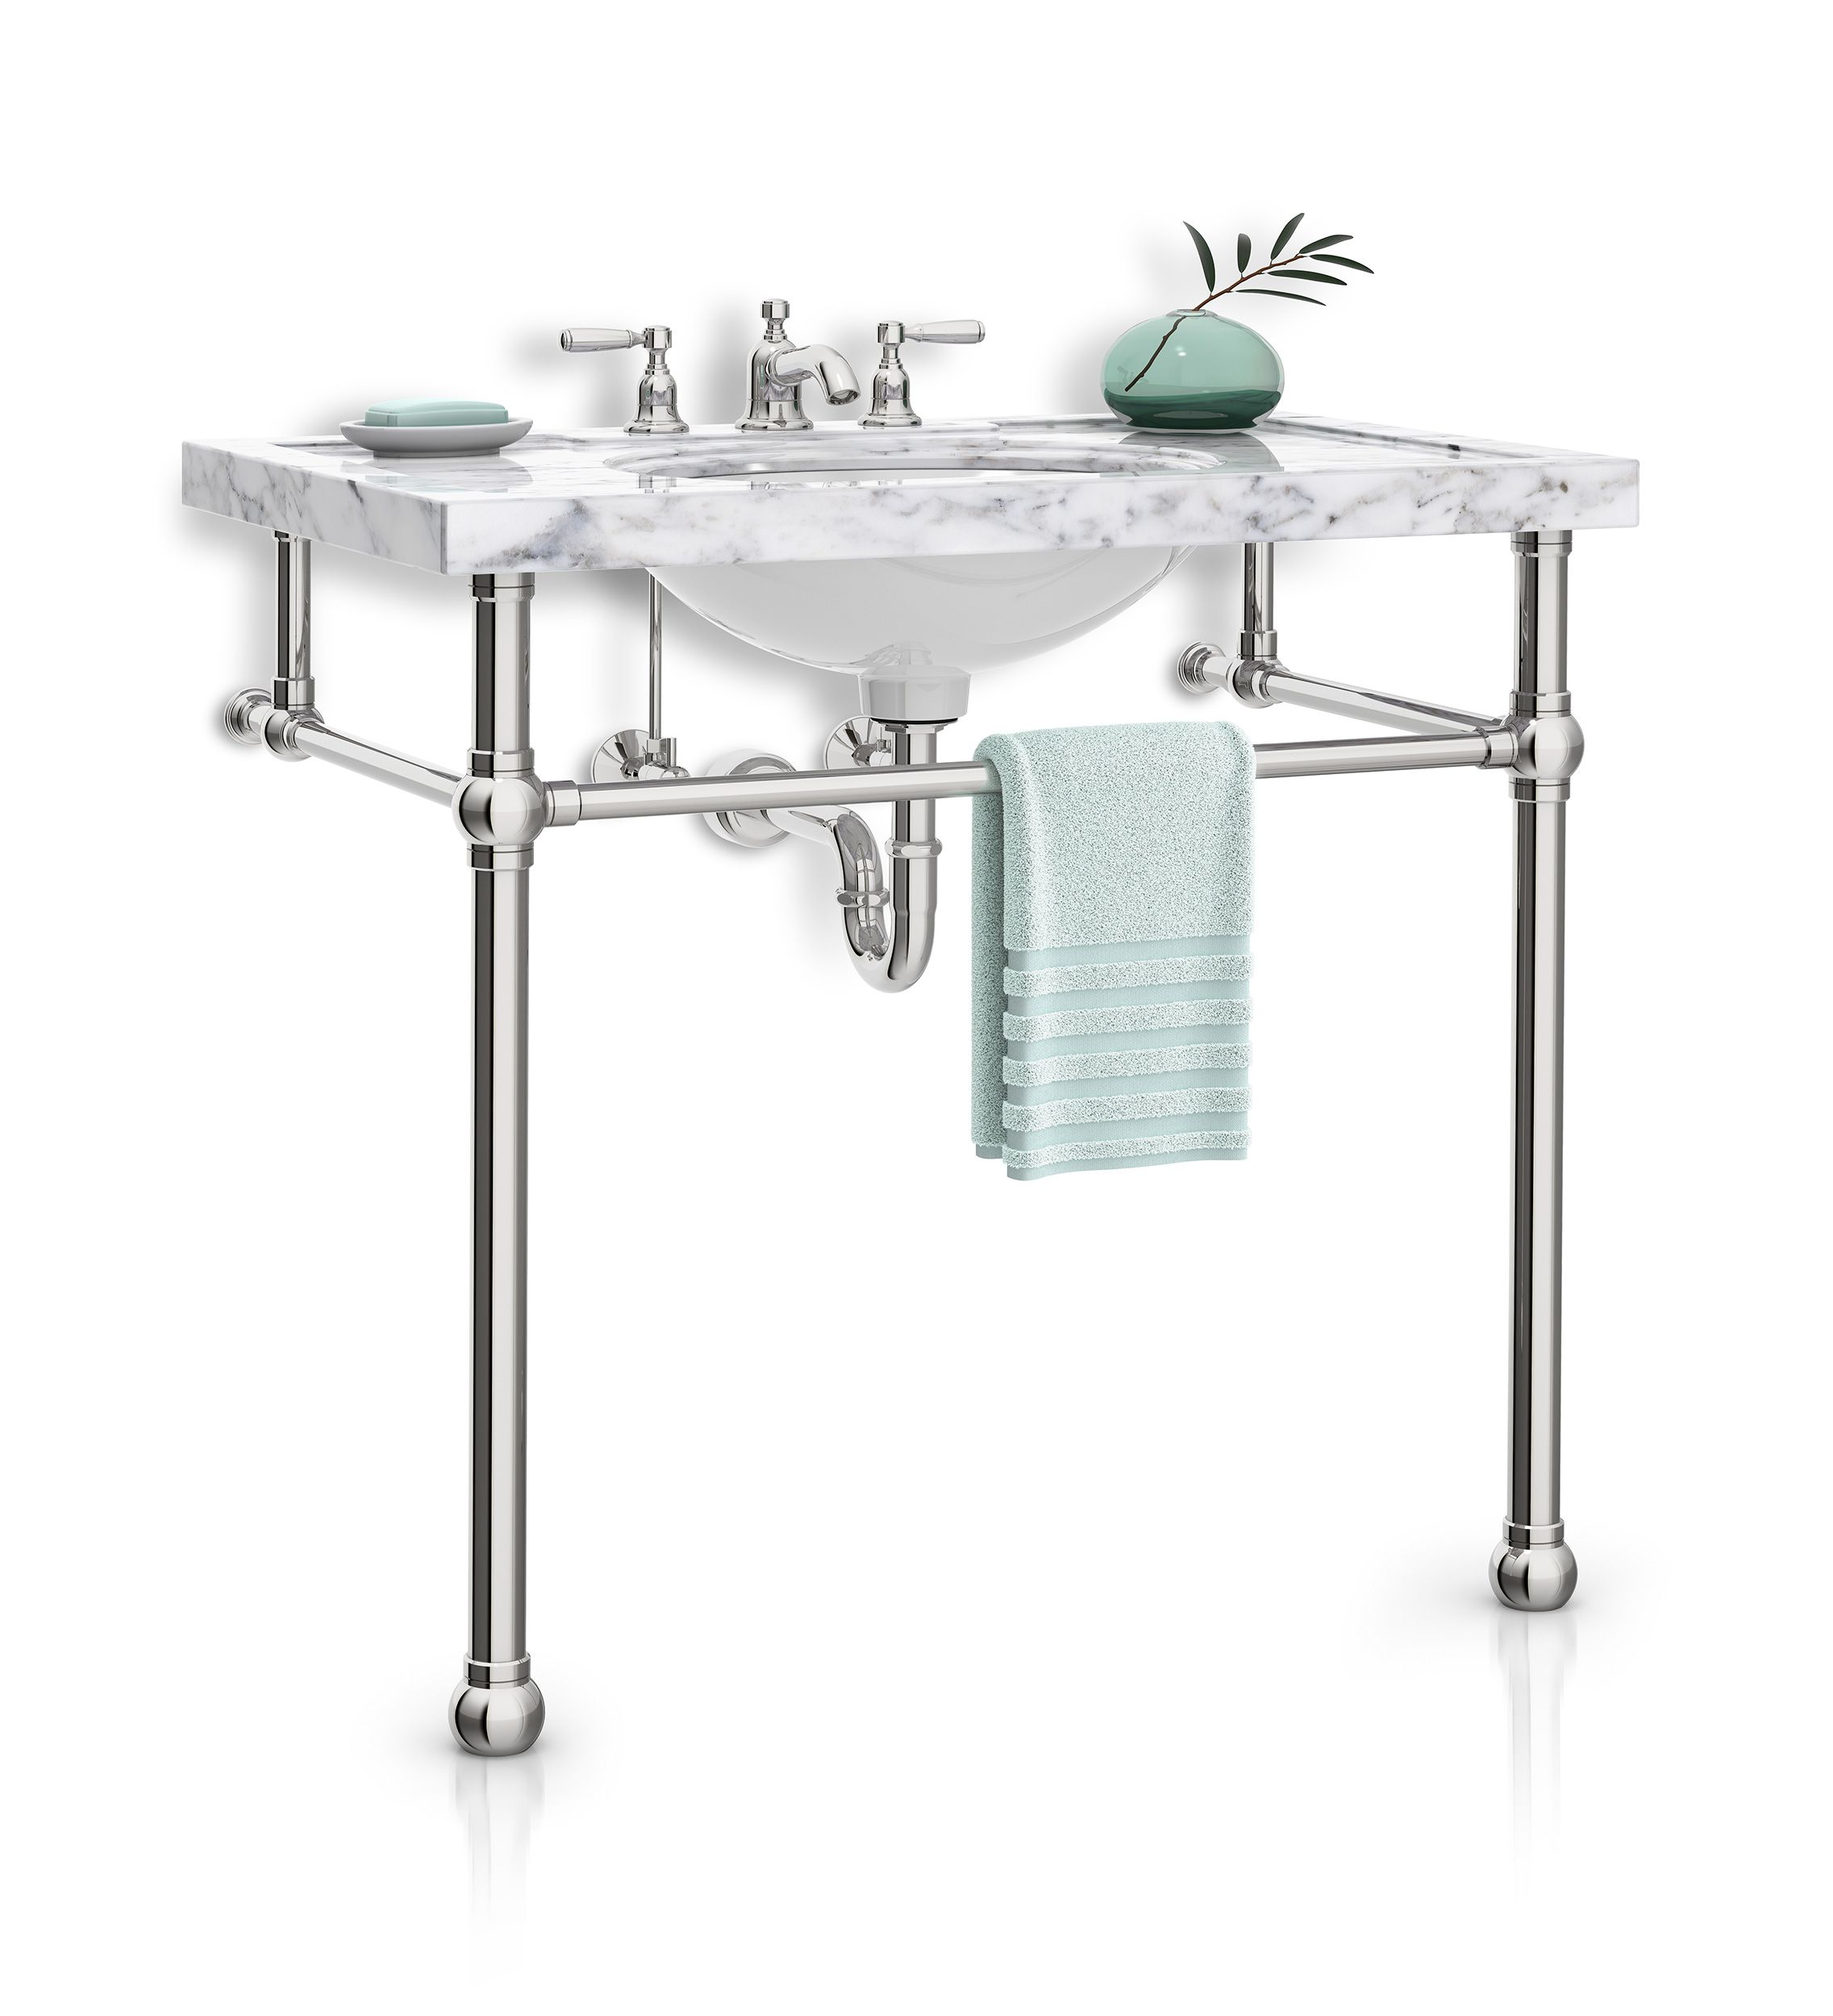 Ball Foot Ls2bl Console Sink Sink Legs Tapered Feet